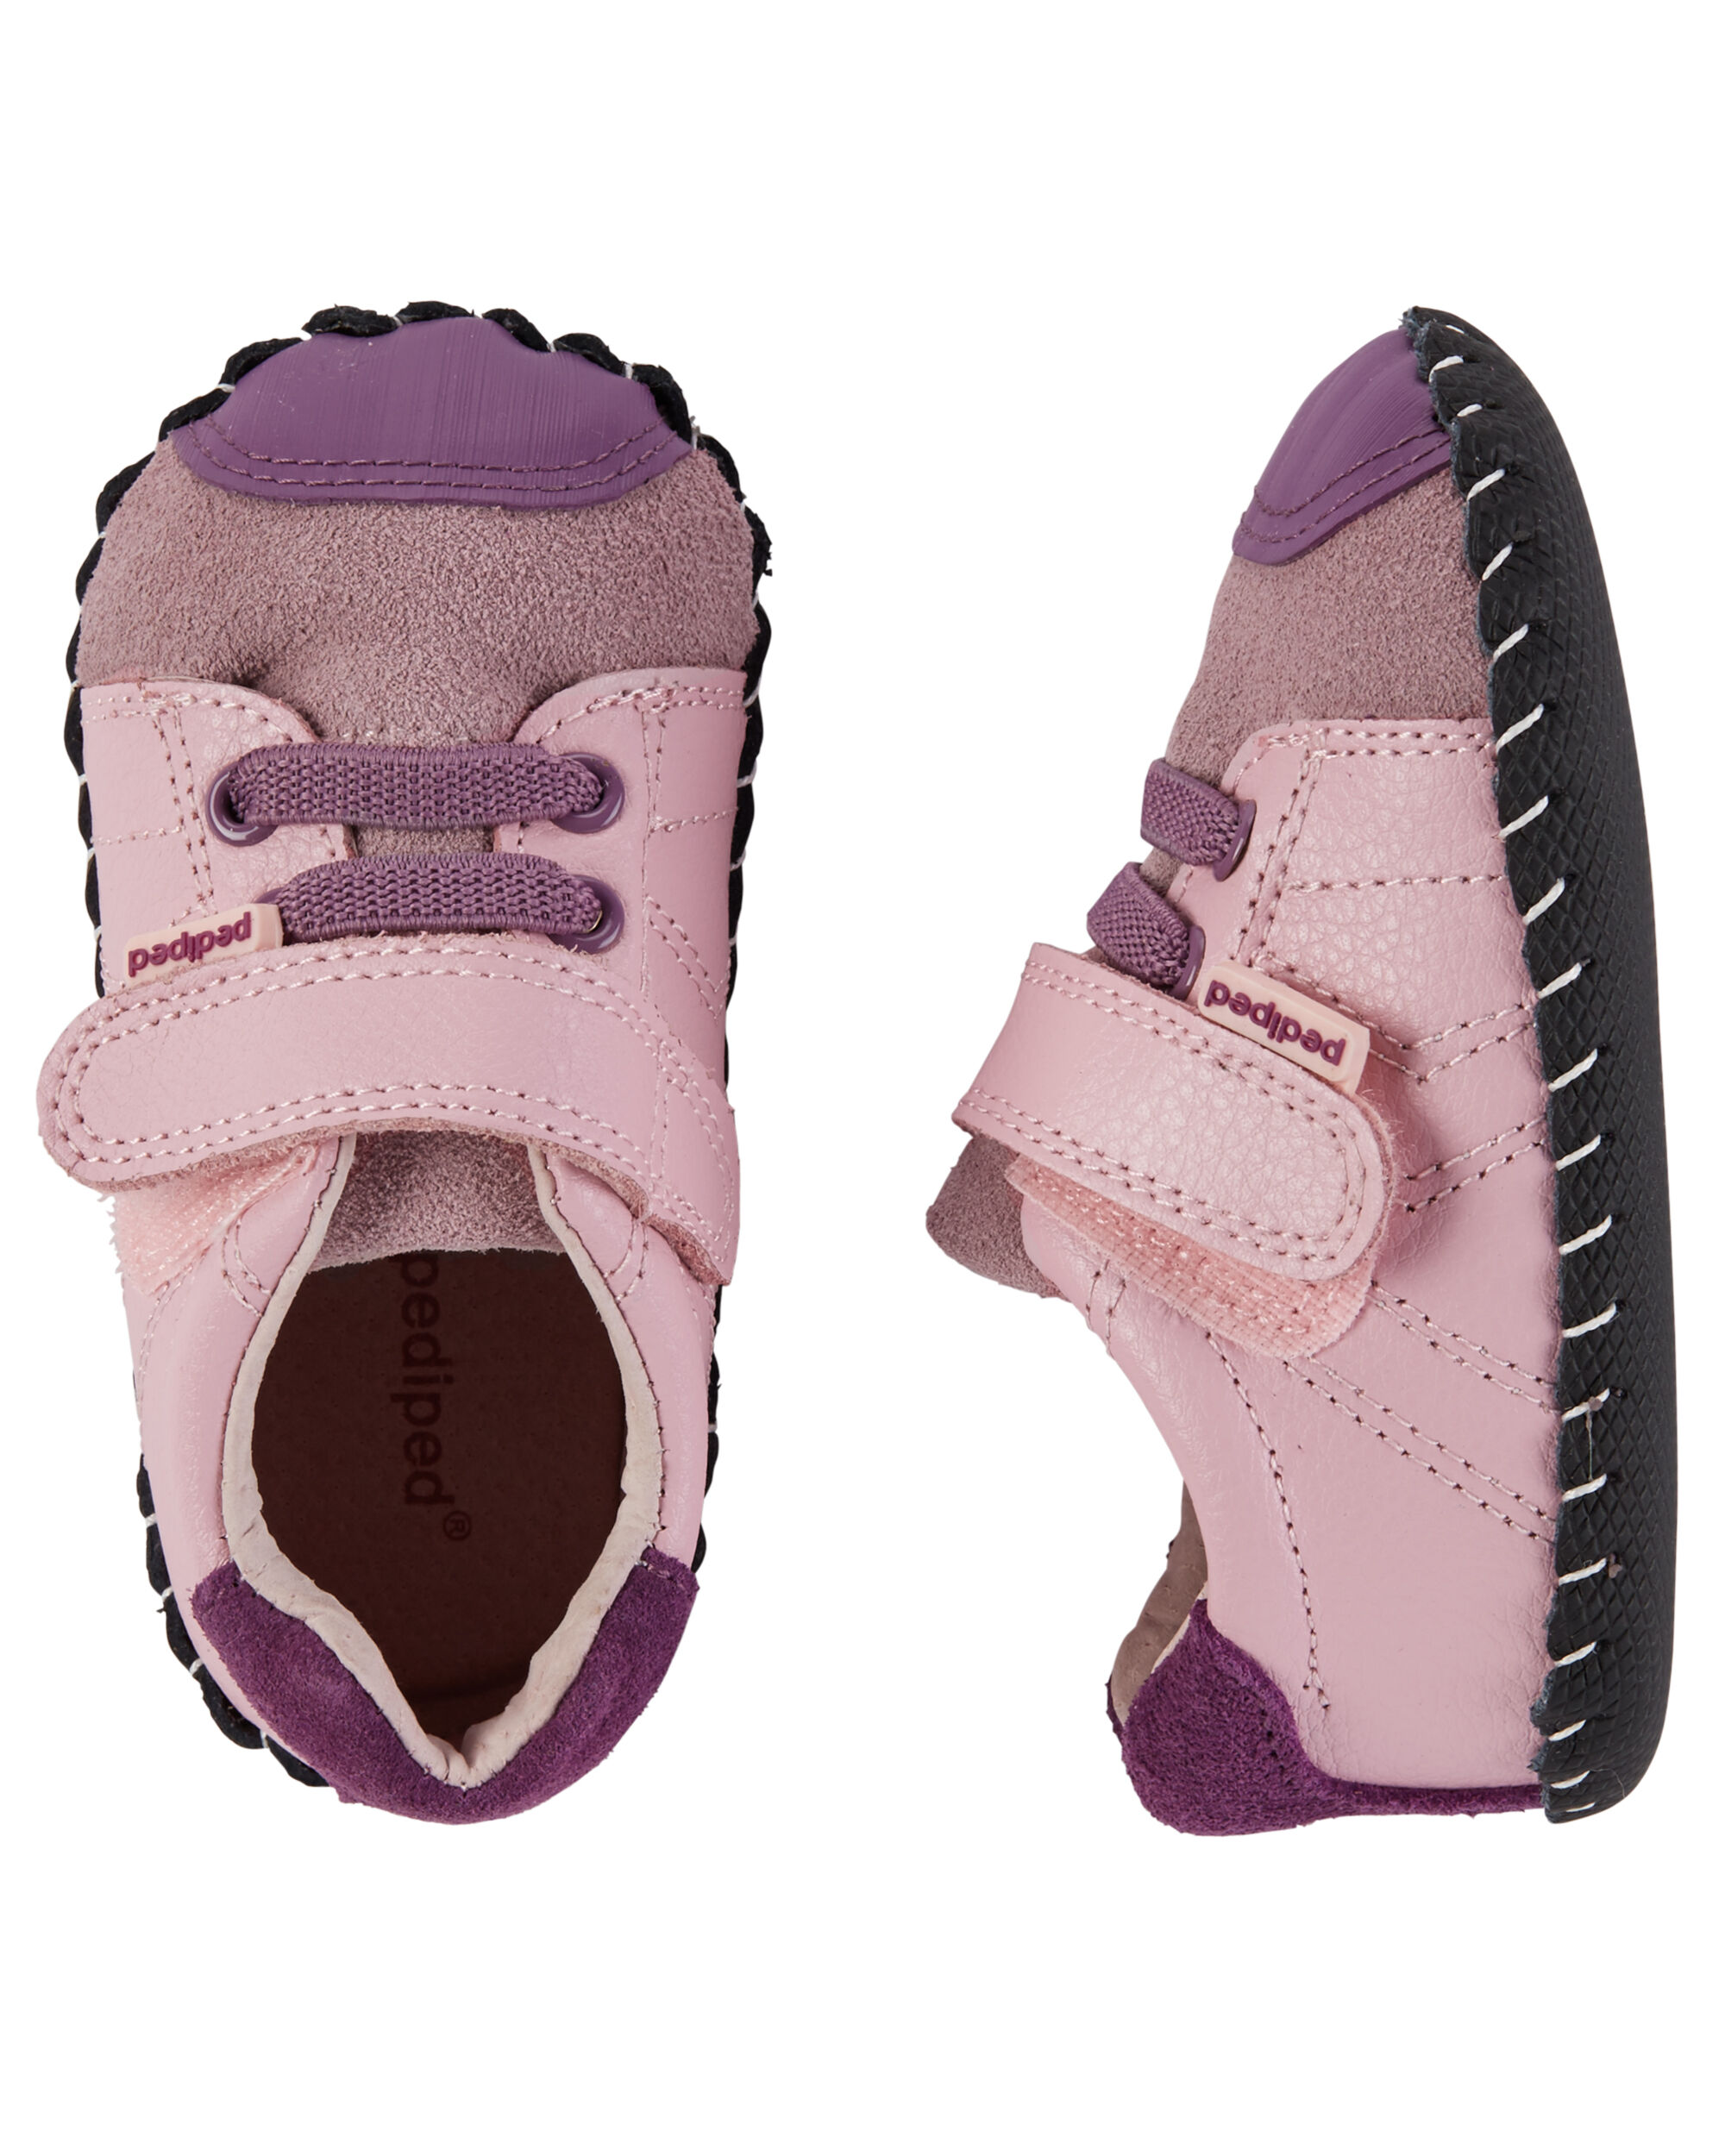 Pediped Originals Jake Pink